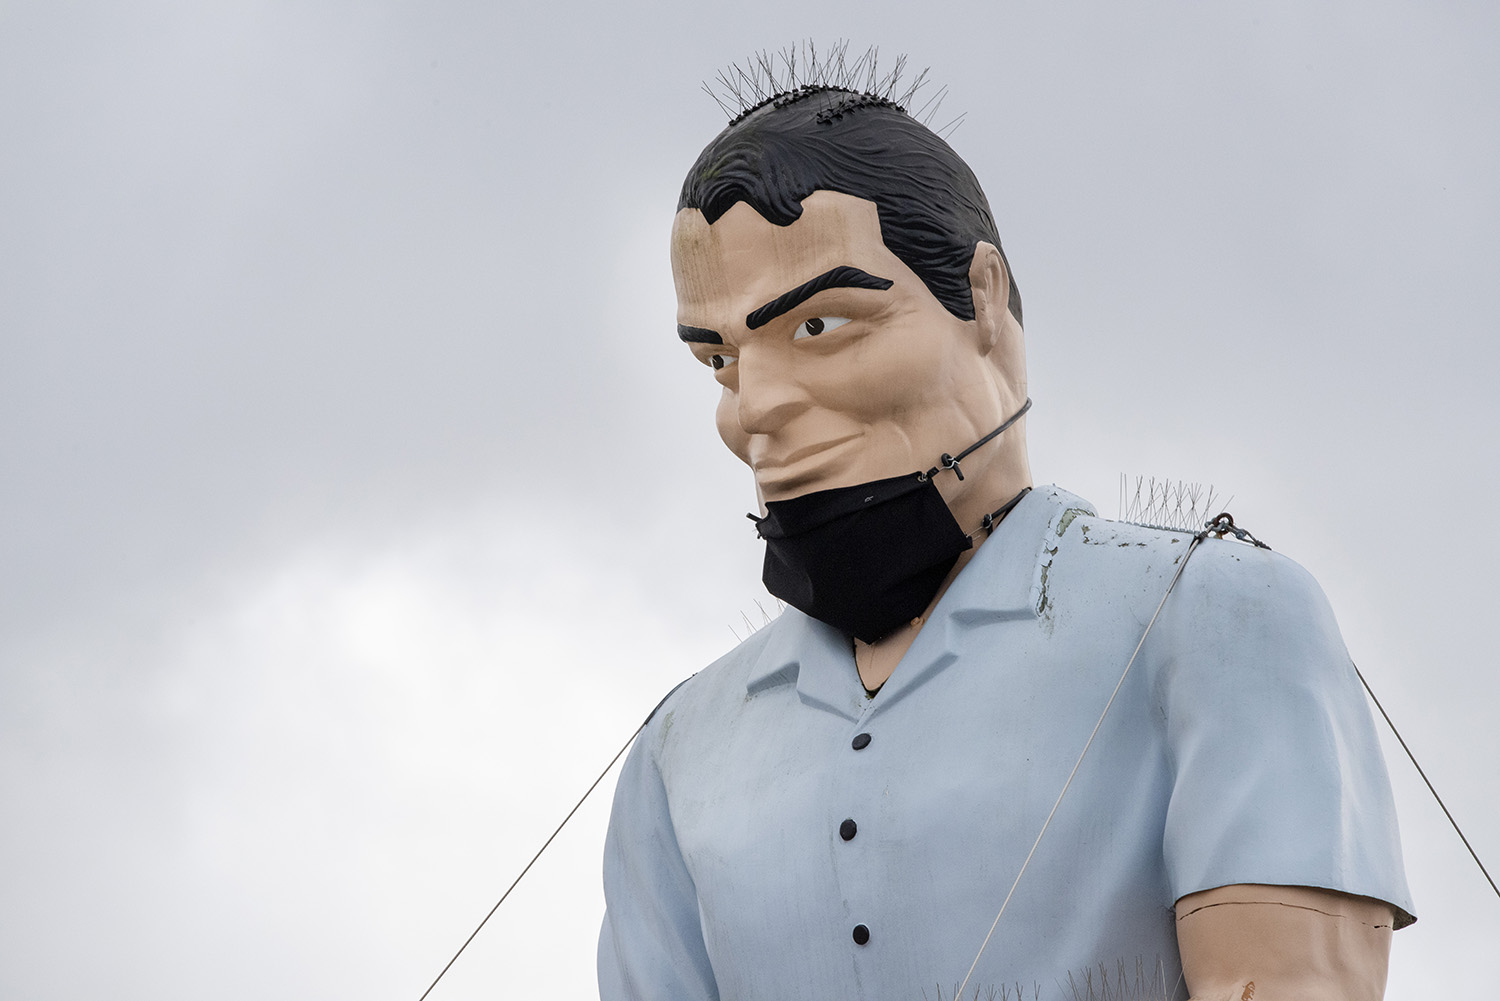 According to Herald Net, the Muffler Man's 18-foot face mask was created by Everett Tent & Awning and made of outdoor fabric and rubber bungee cords. Recent strong winds have caused the mask to slip down a bit. (Rachael Jones / Seattle Refined)